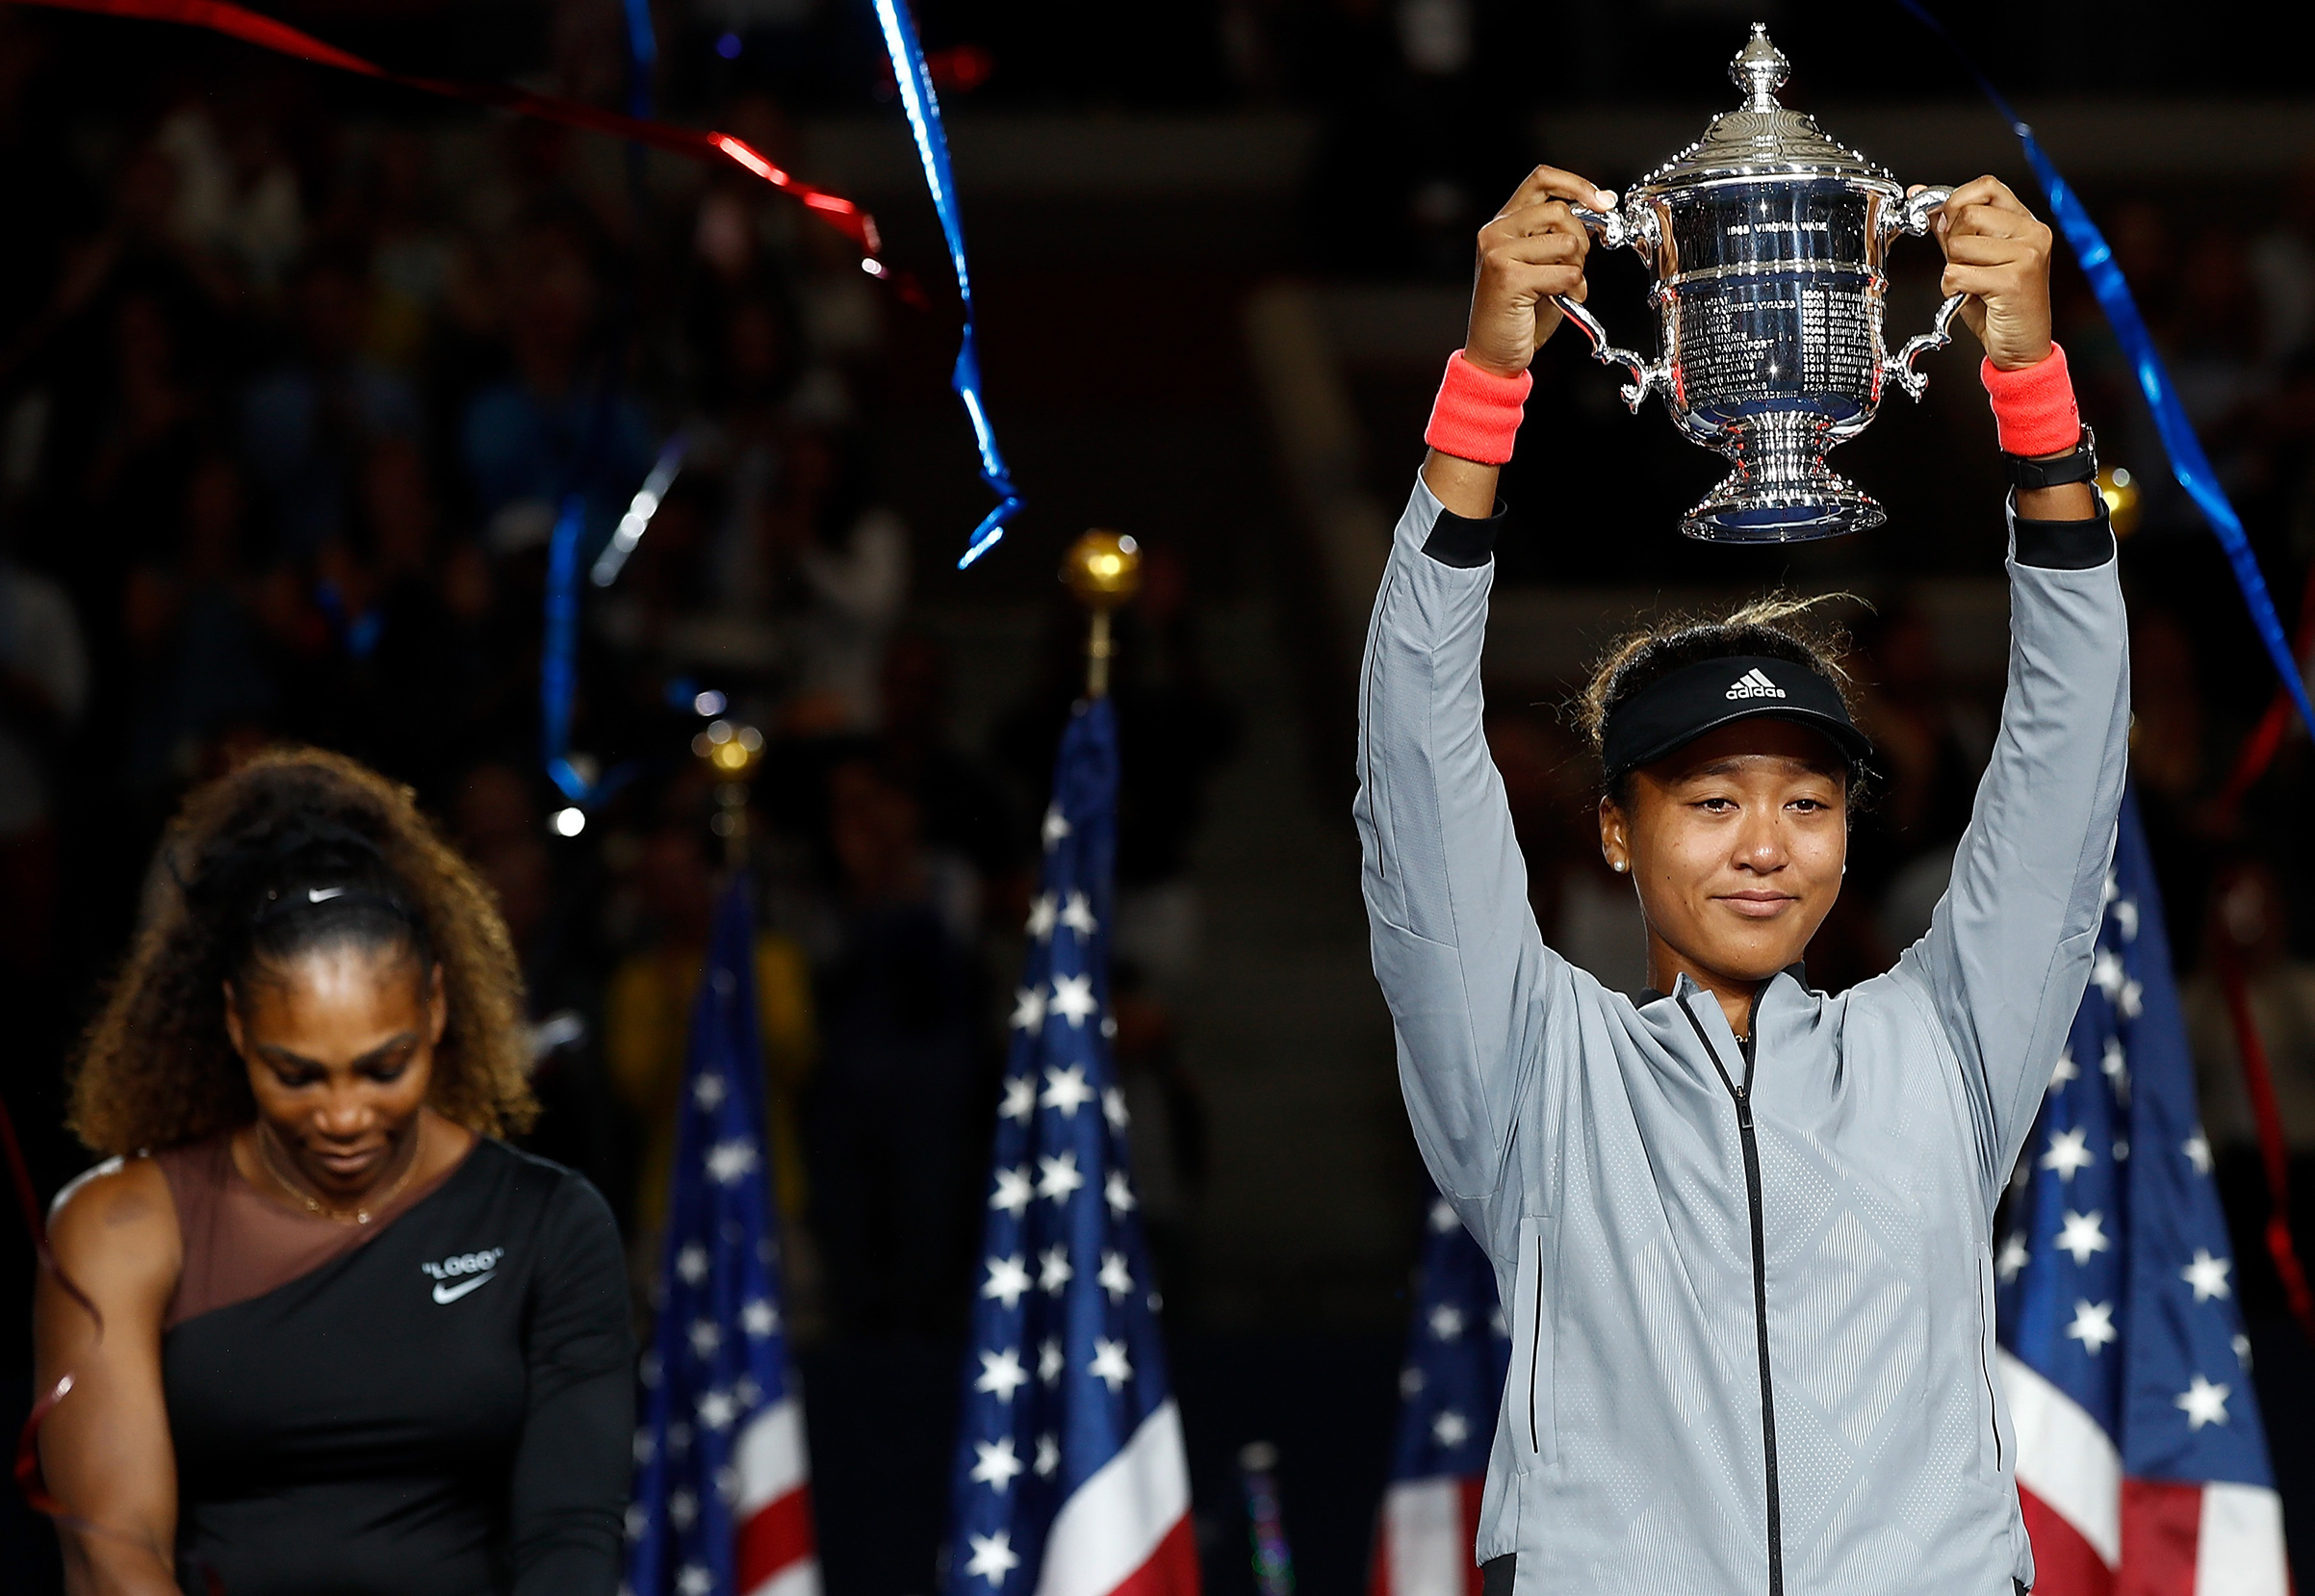 At the U.S. Open trophy ceremony, Osaka apologized to booing fans for beating her idol, Serena Williams